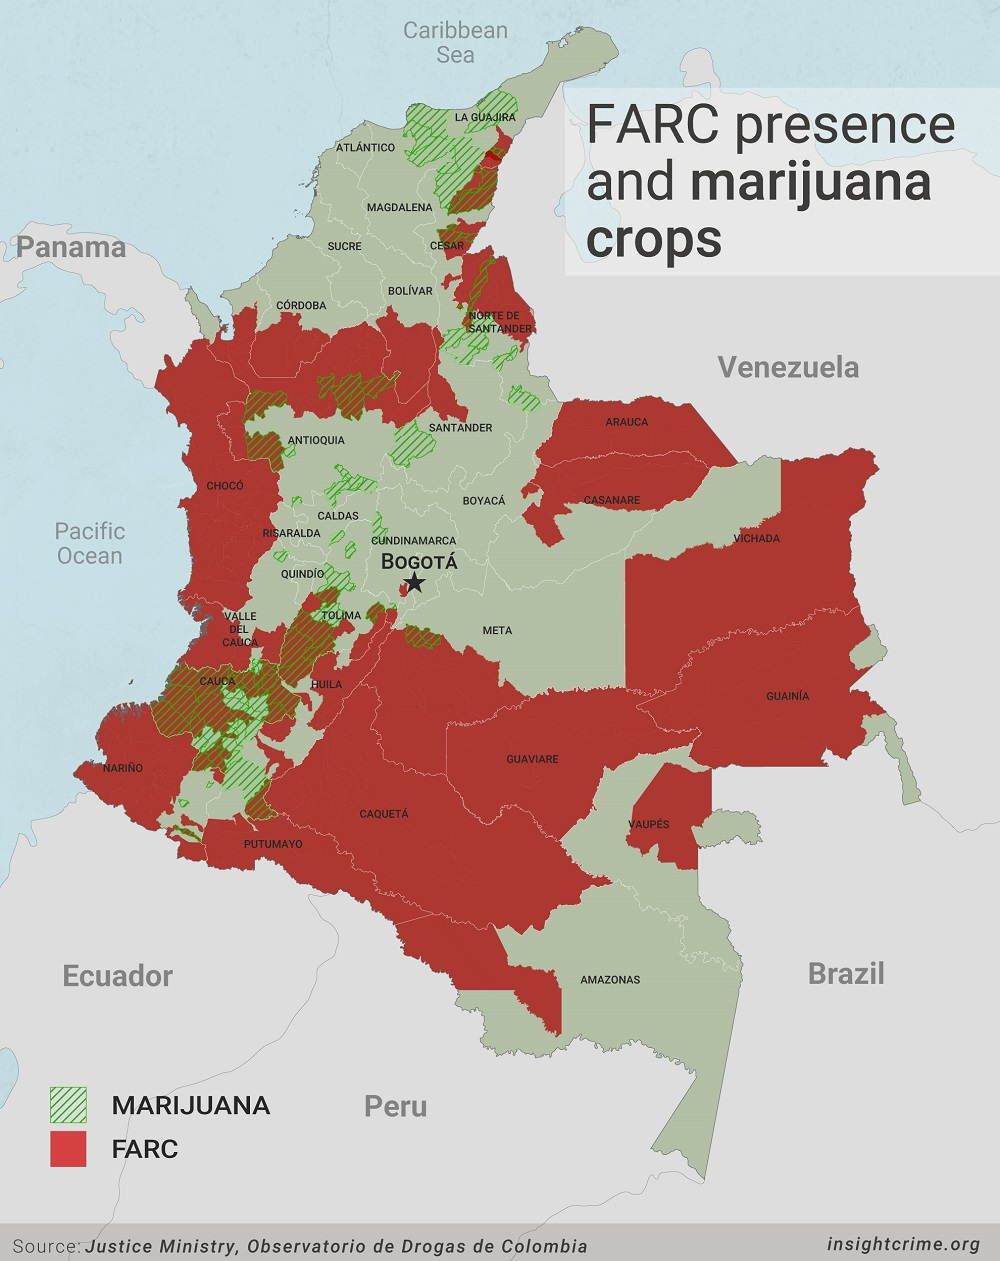 17-09-05-Colombia-farc-presence-and-marijuana-crops